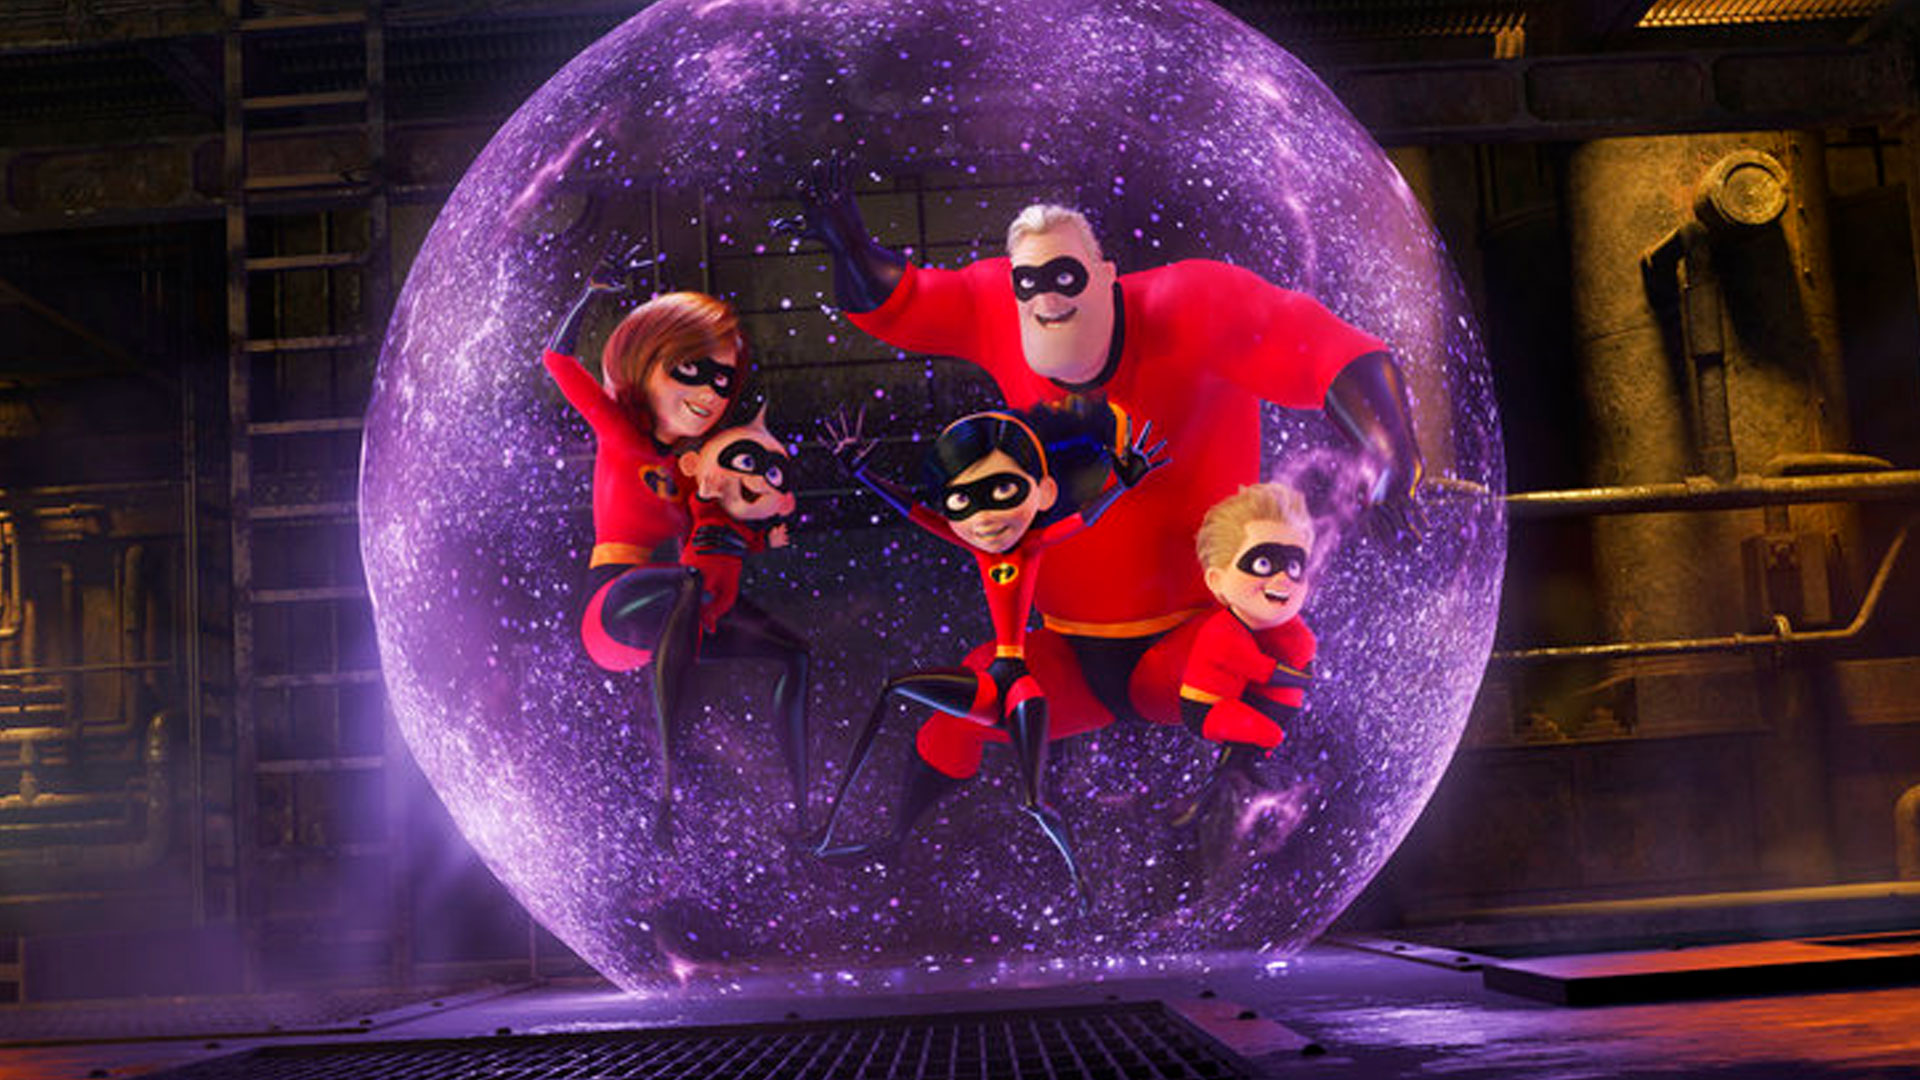 incredibles_1529258593564.jpg